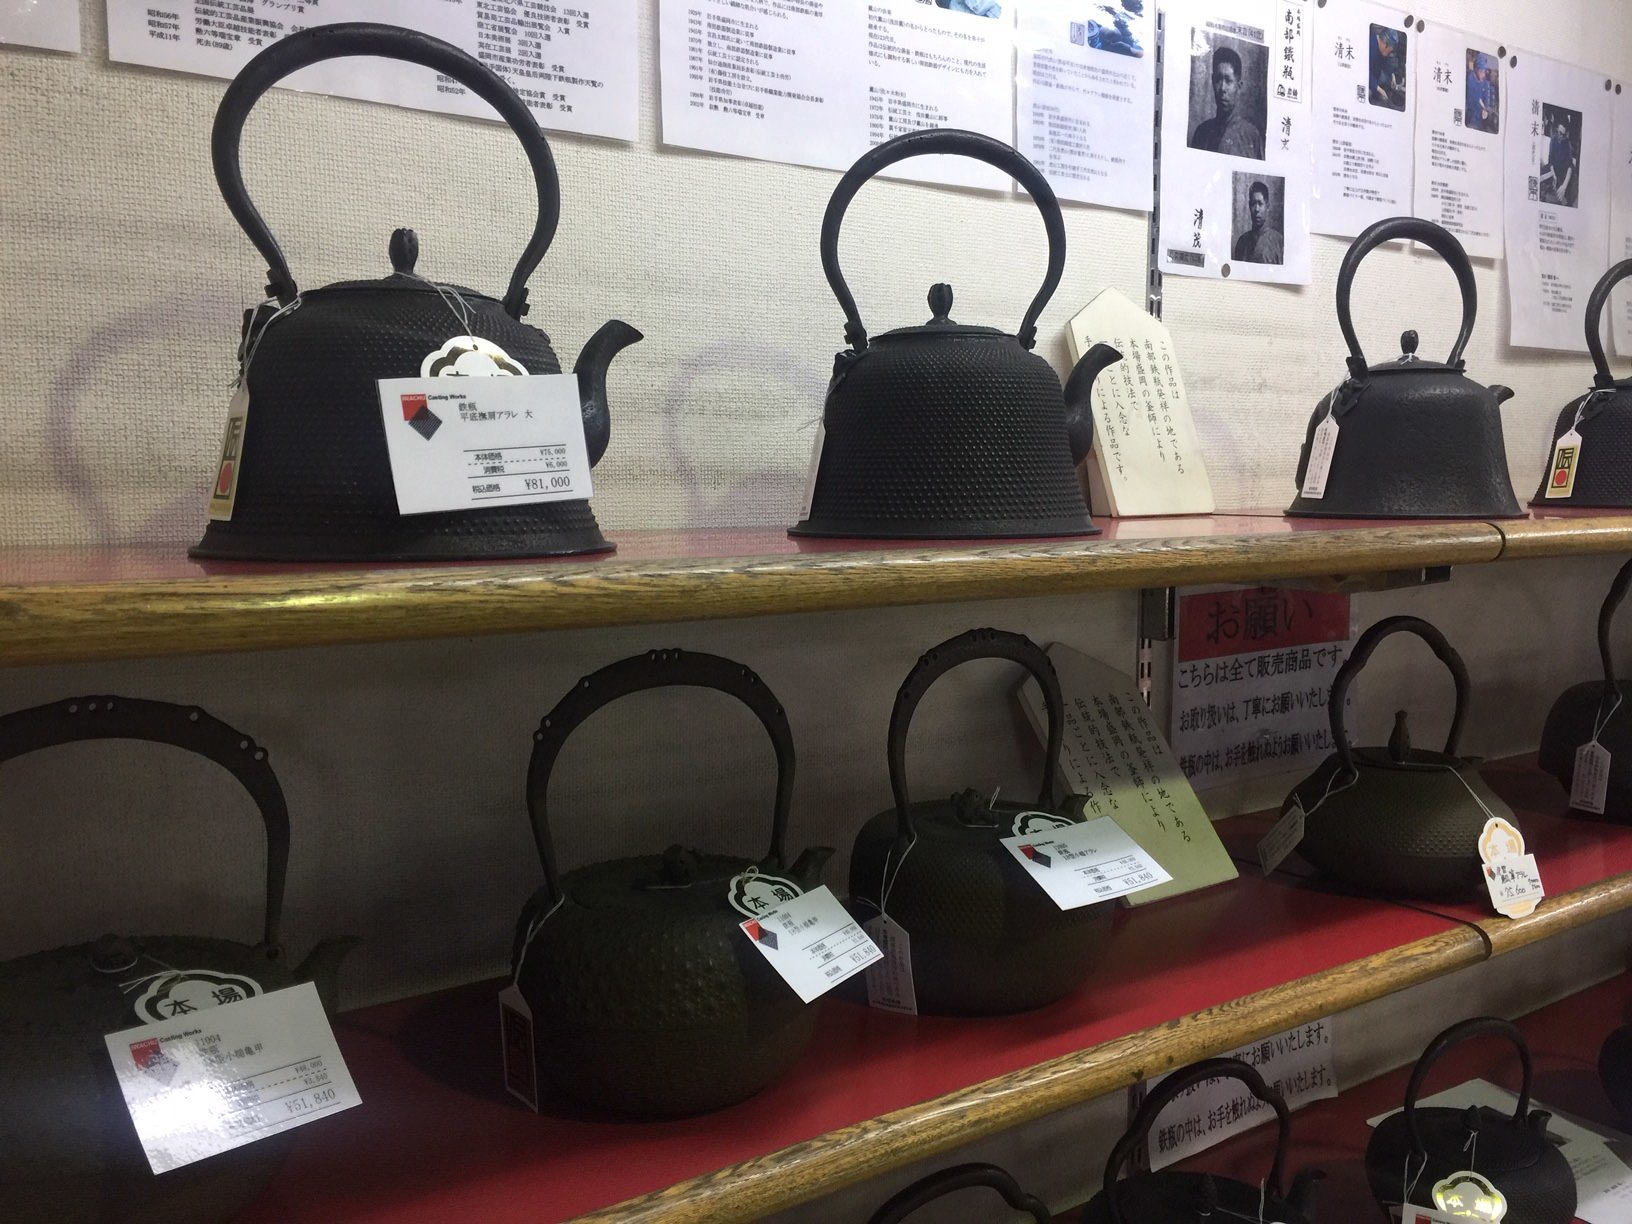 cast iron kettles on display